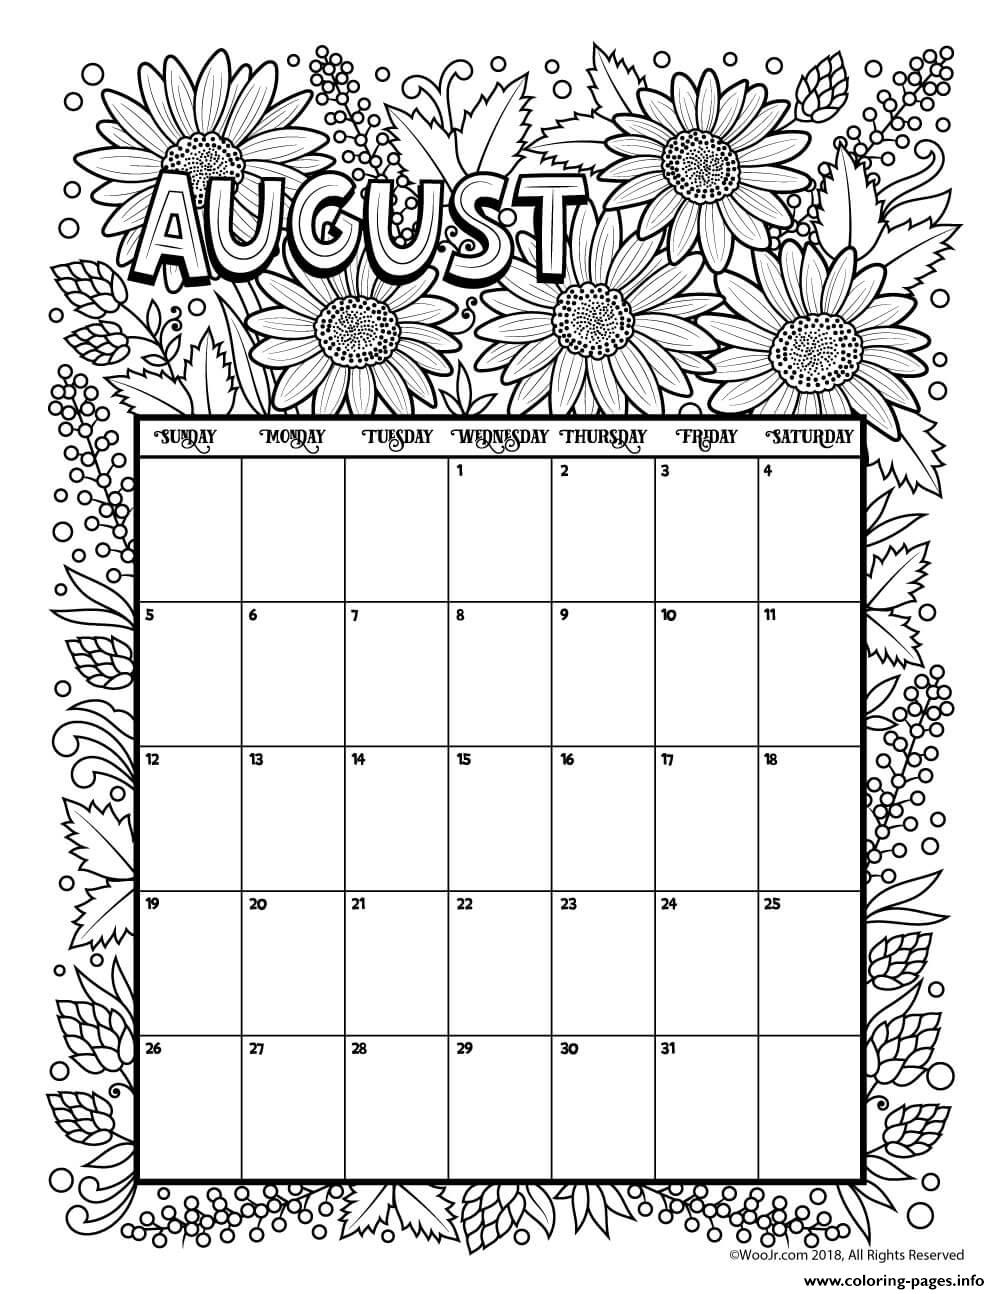 01/05/2021· blankcalendarpages.com is a united states based website that brings you simple, elegant calendar pages (mainly english). August Calendar Coloring Pages Printable